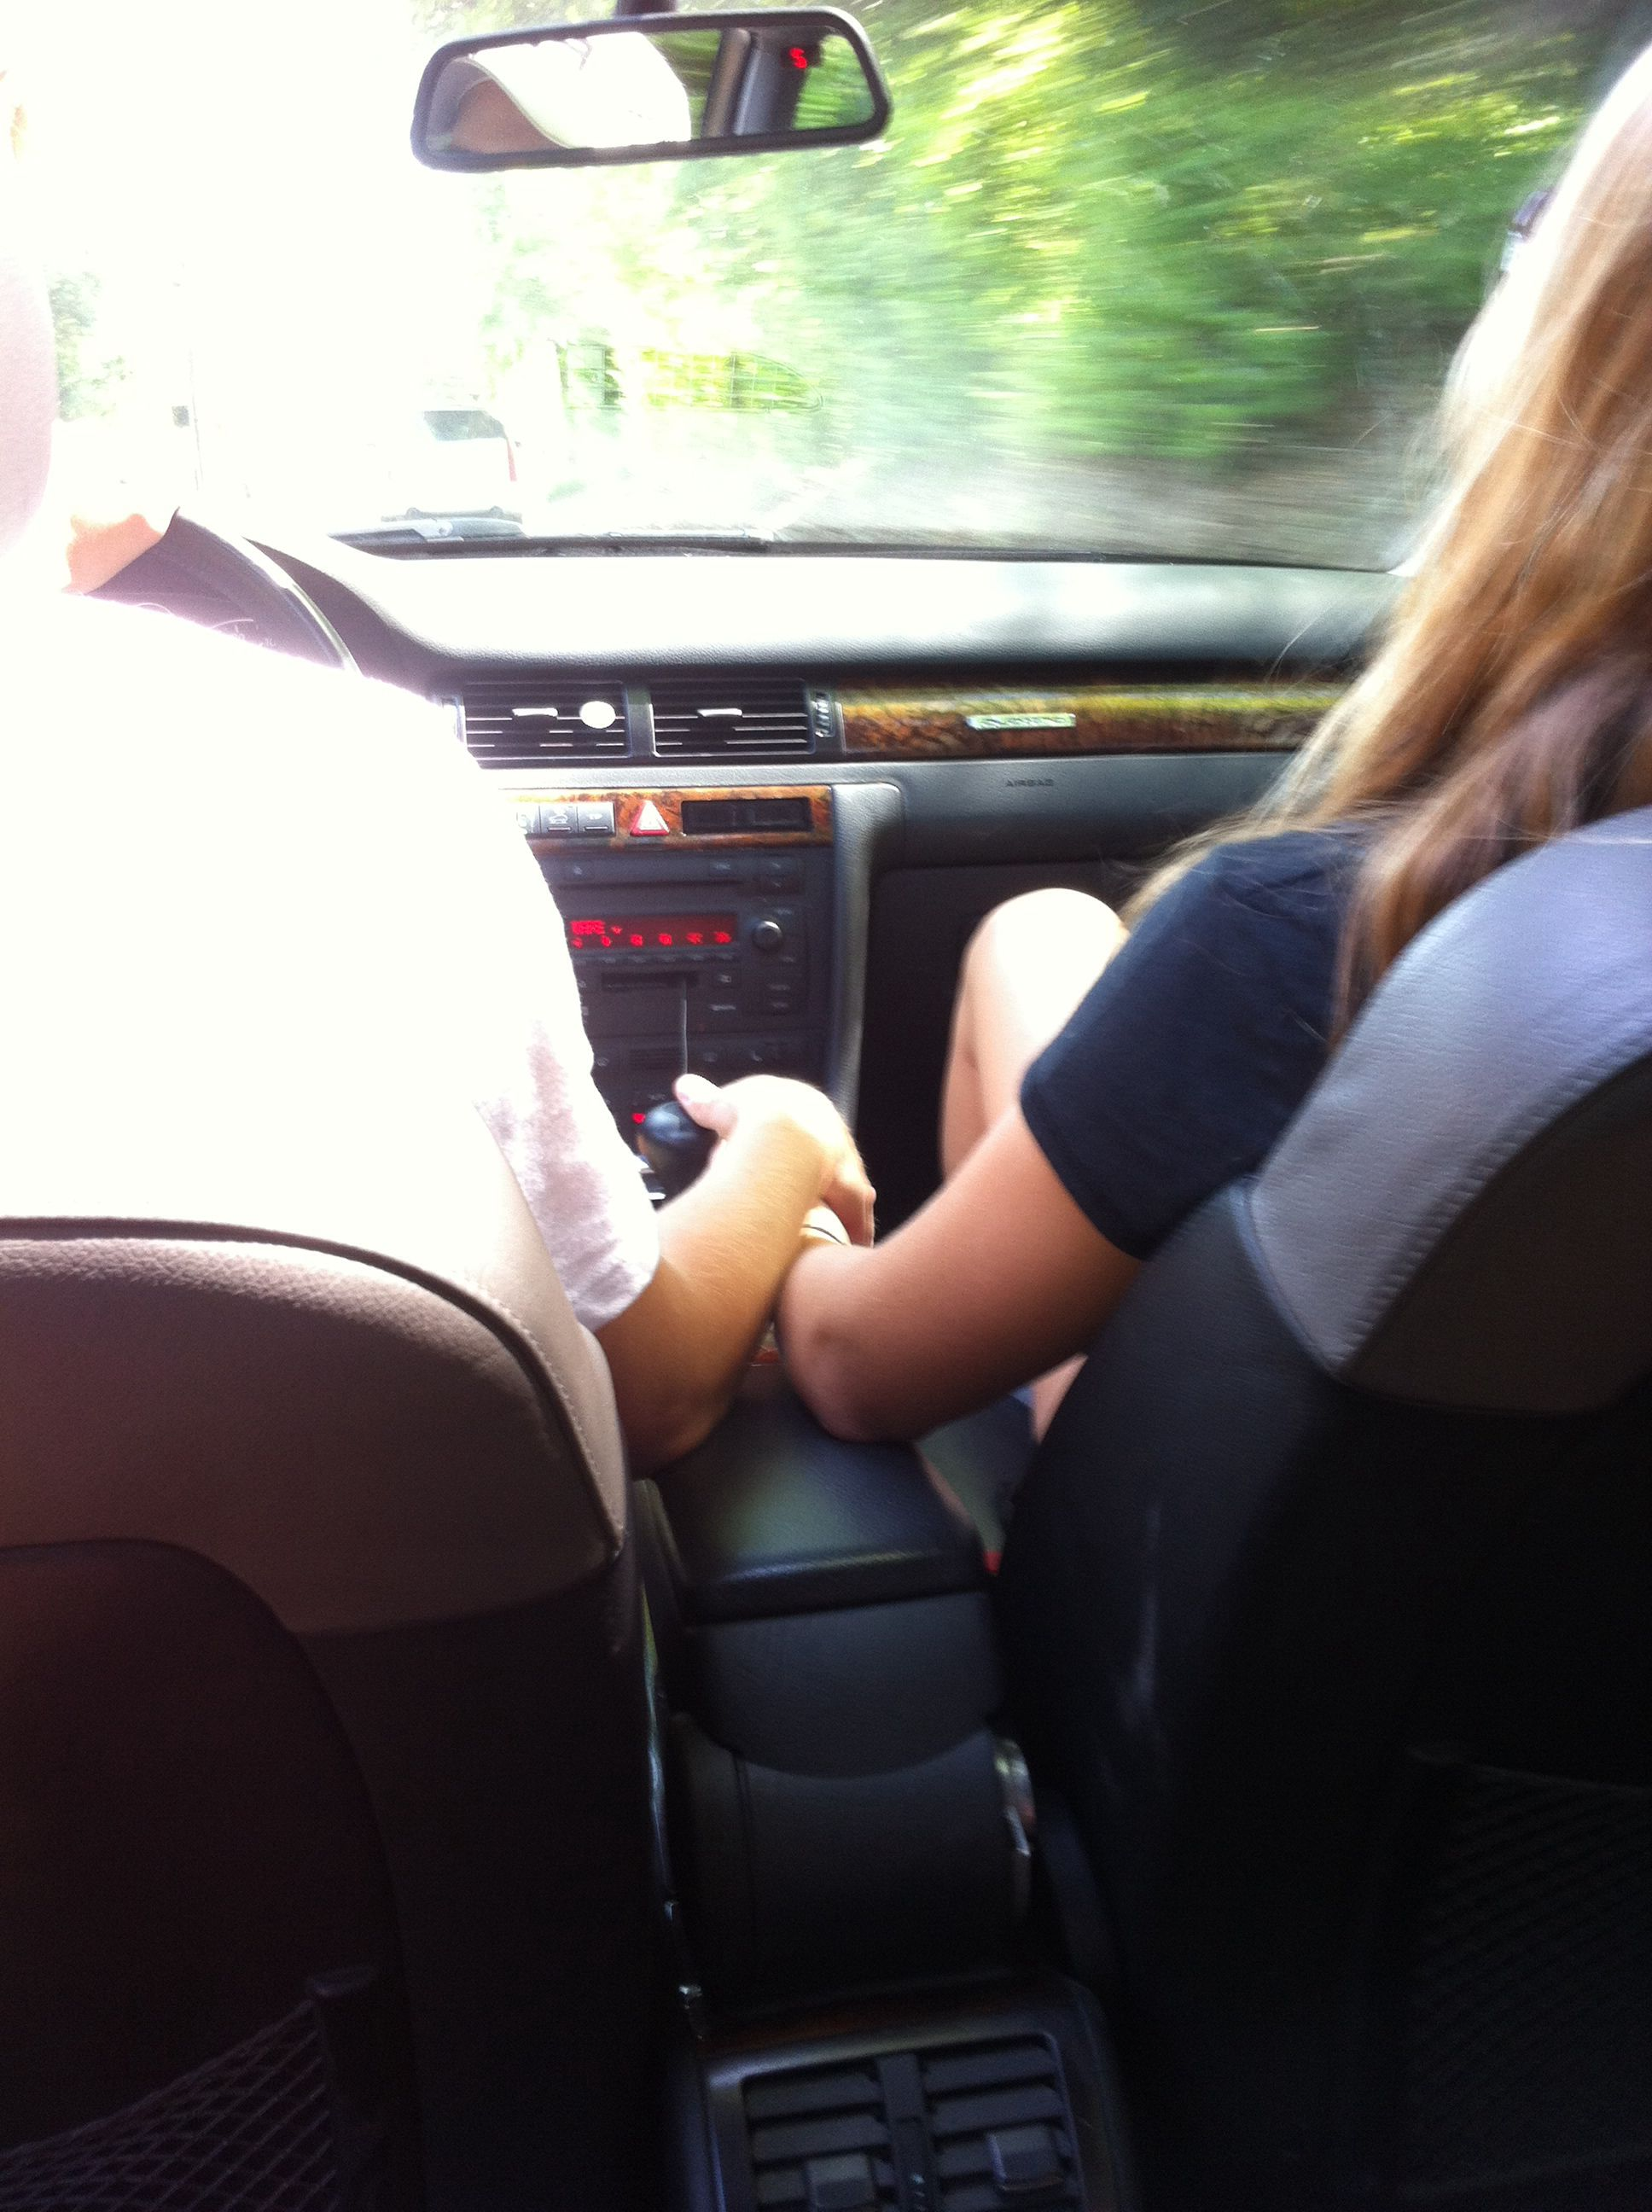 Boyfriend And Girlfriend Holding Hands While Driving In A